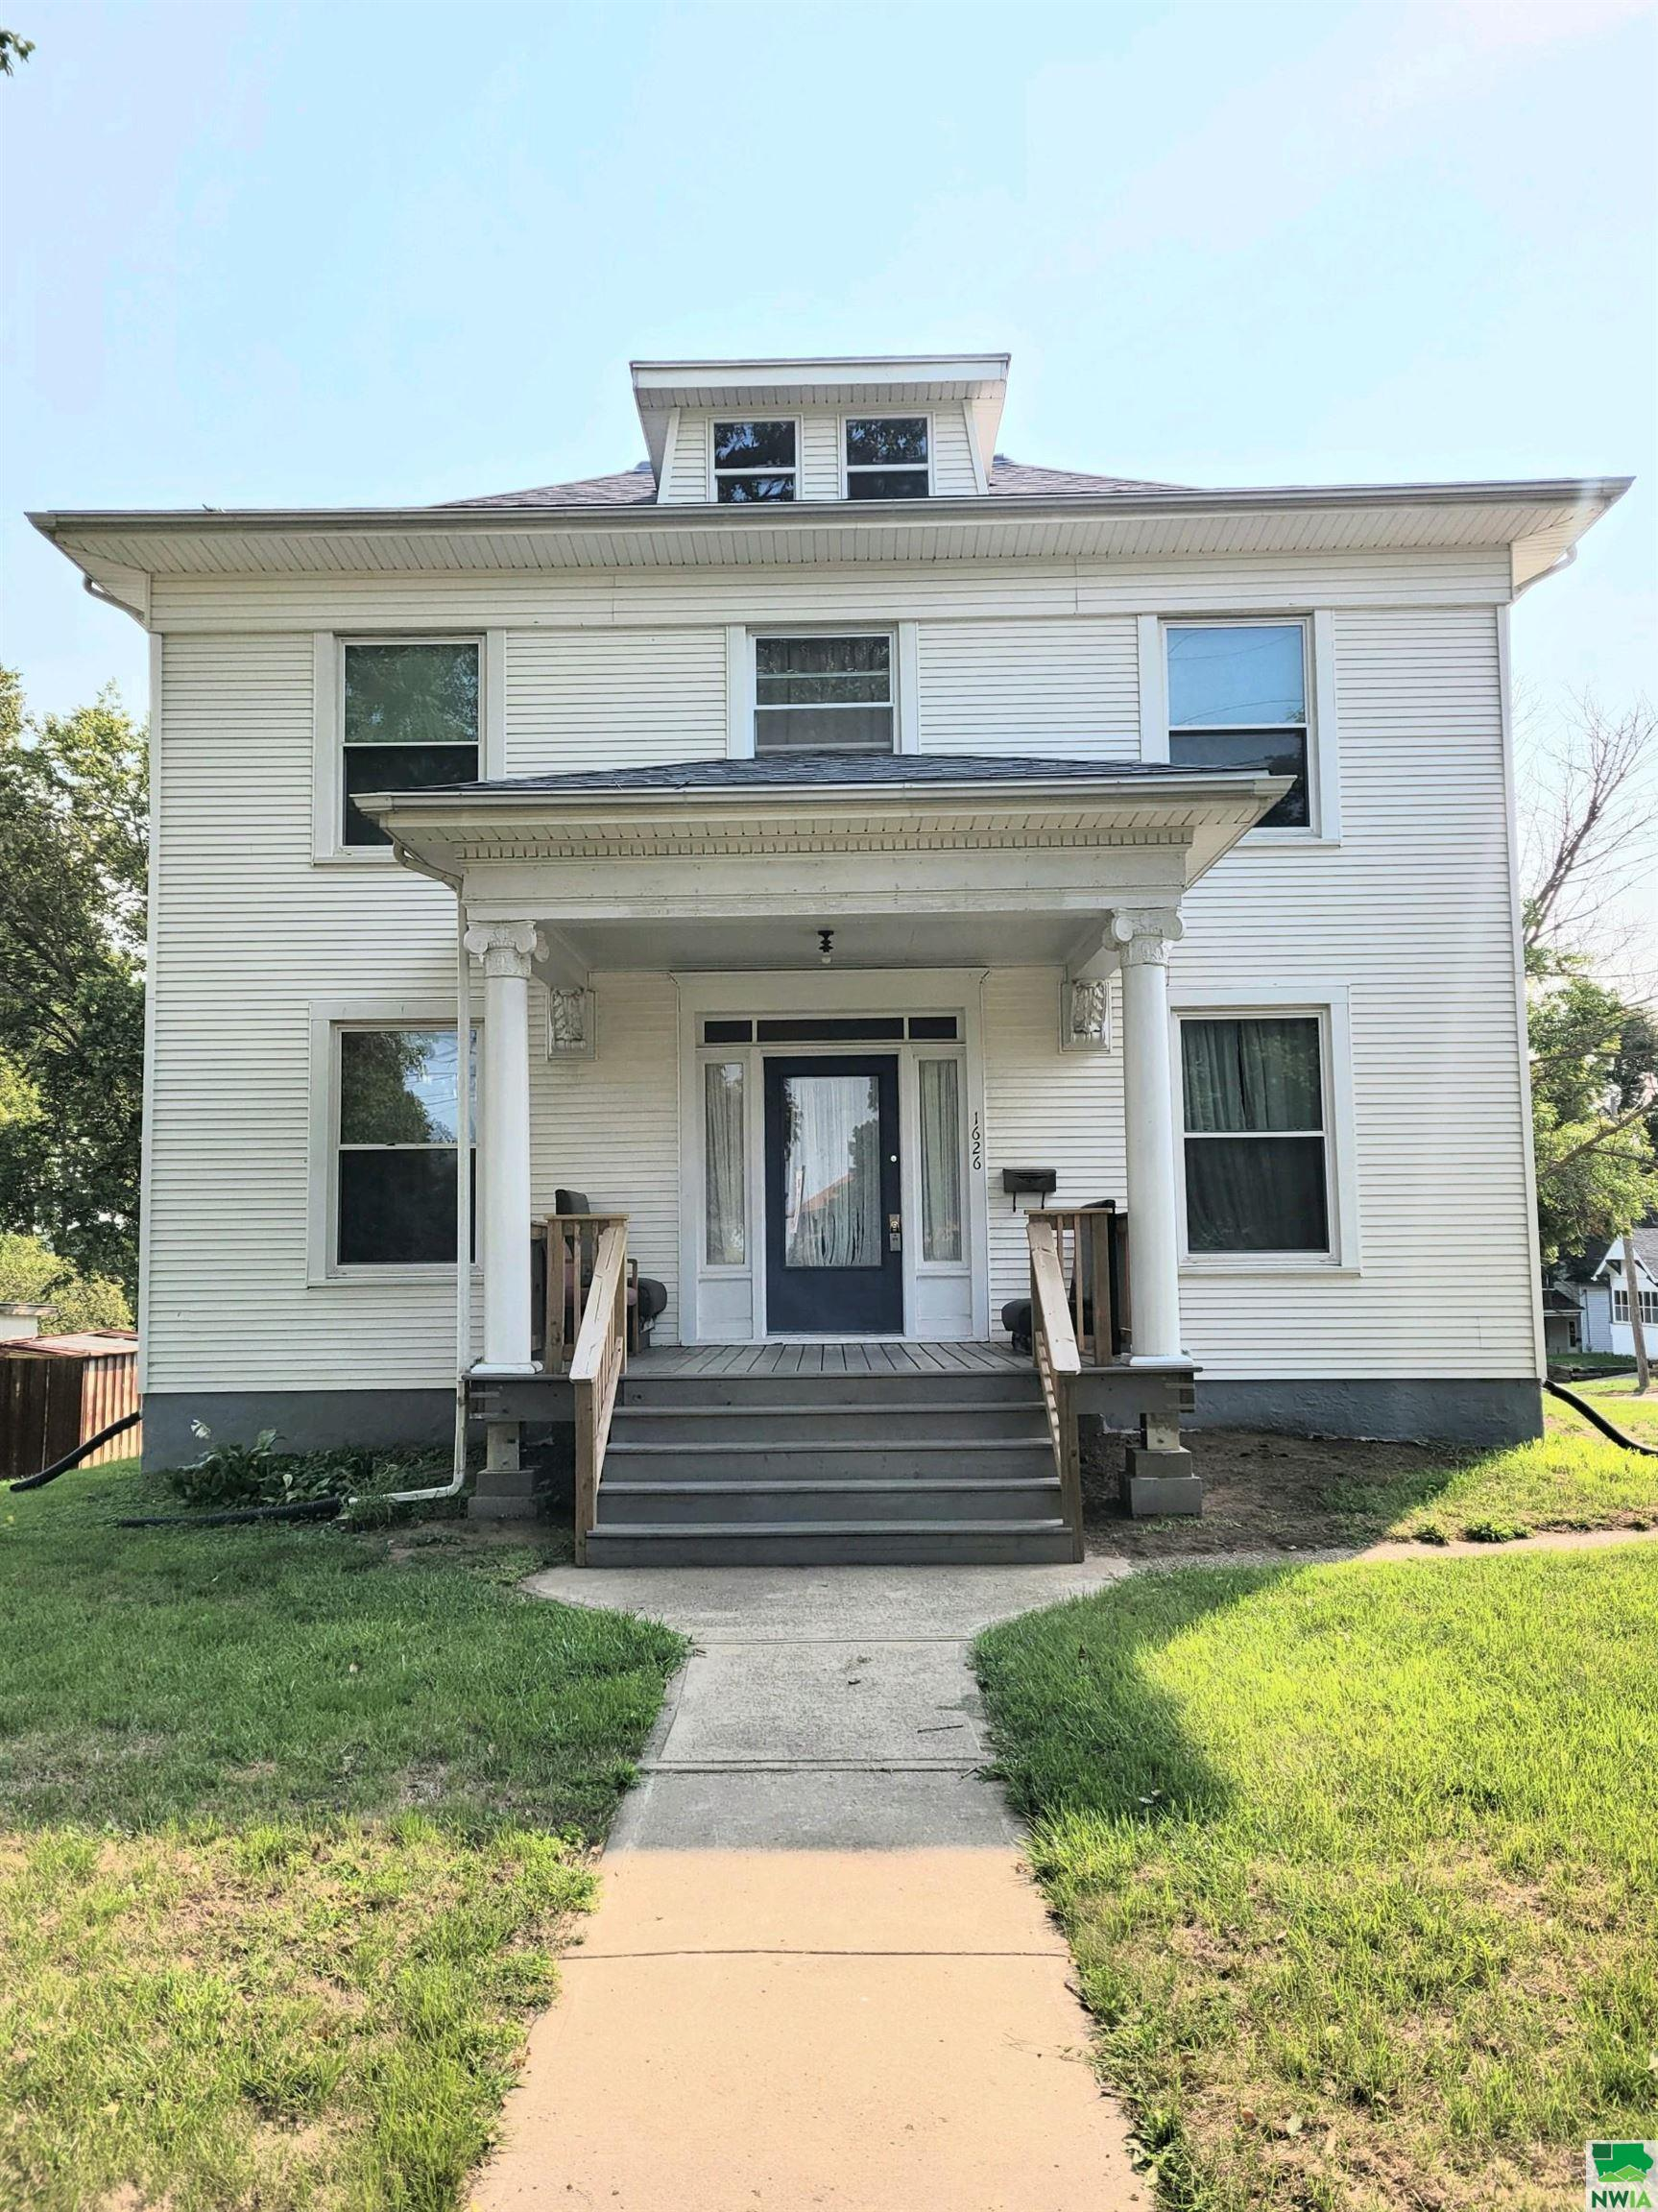 1626 Morningside Ave, Sioux City, Iowa 51106